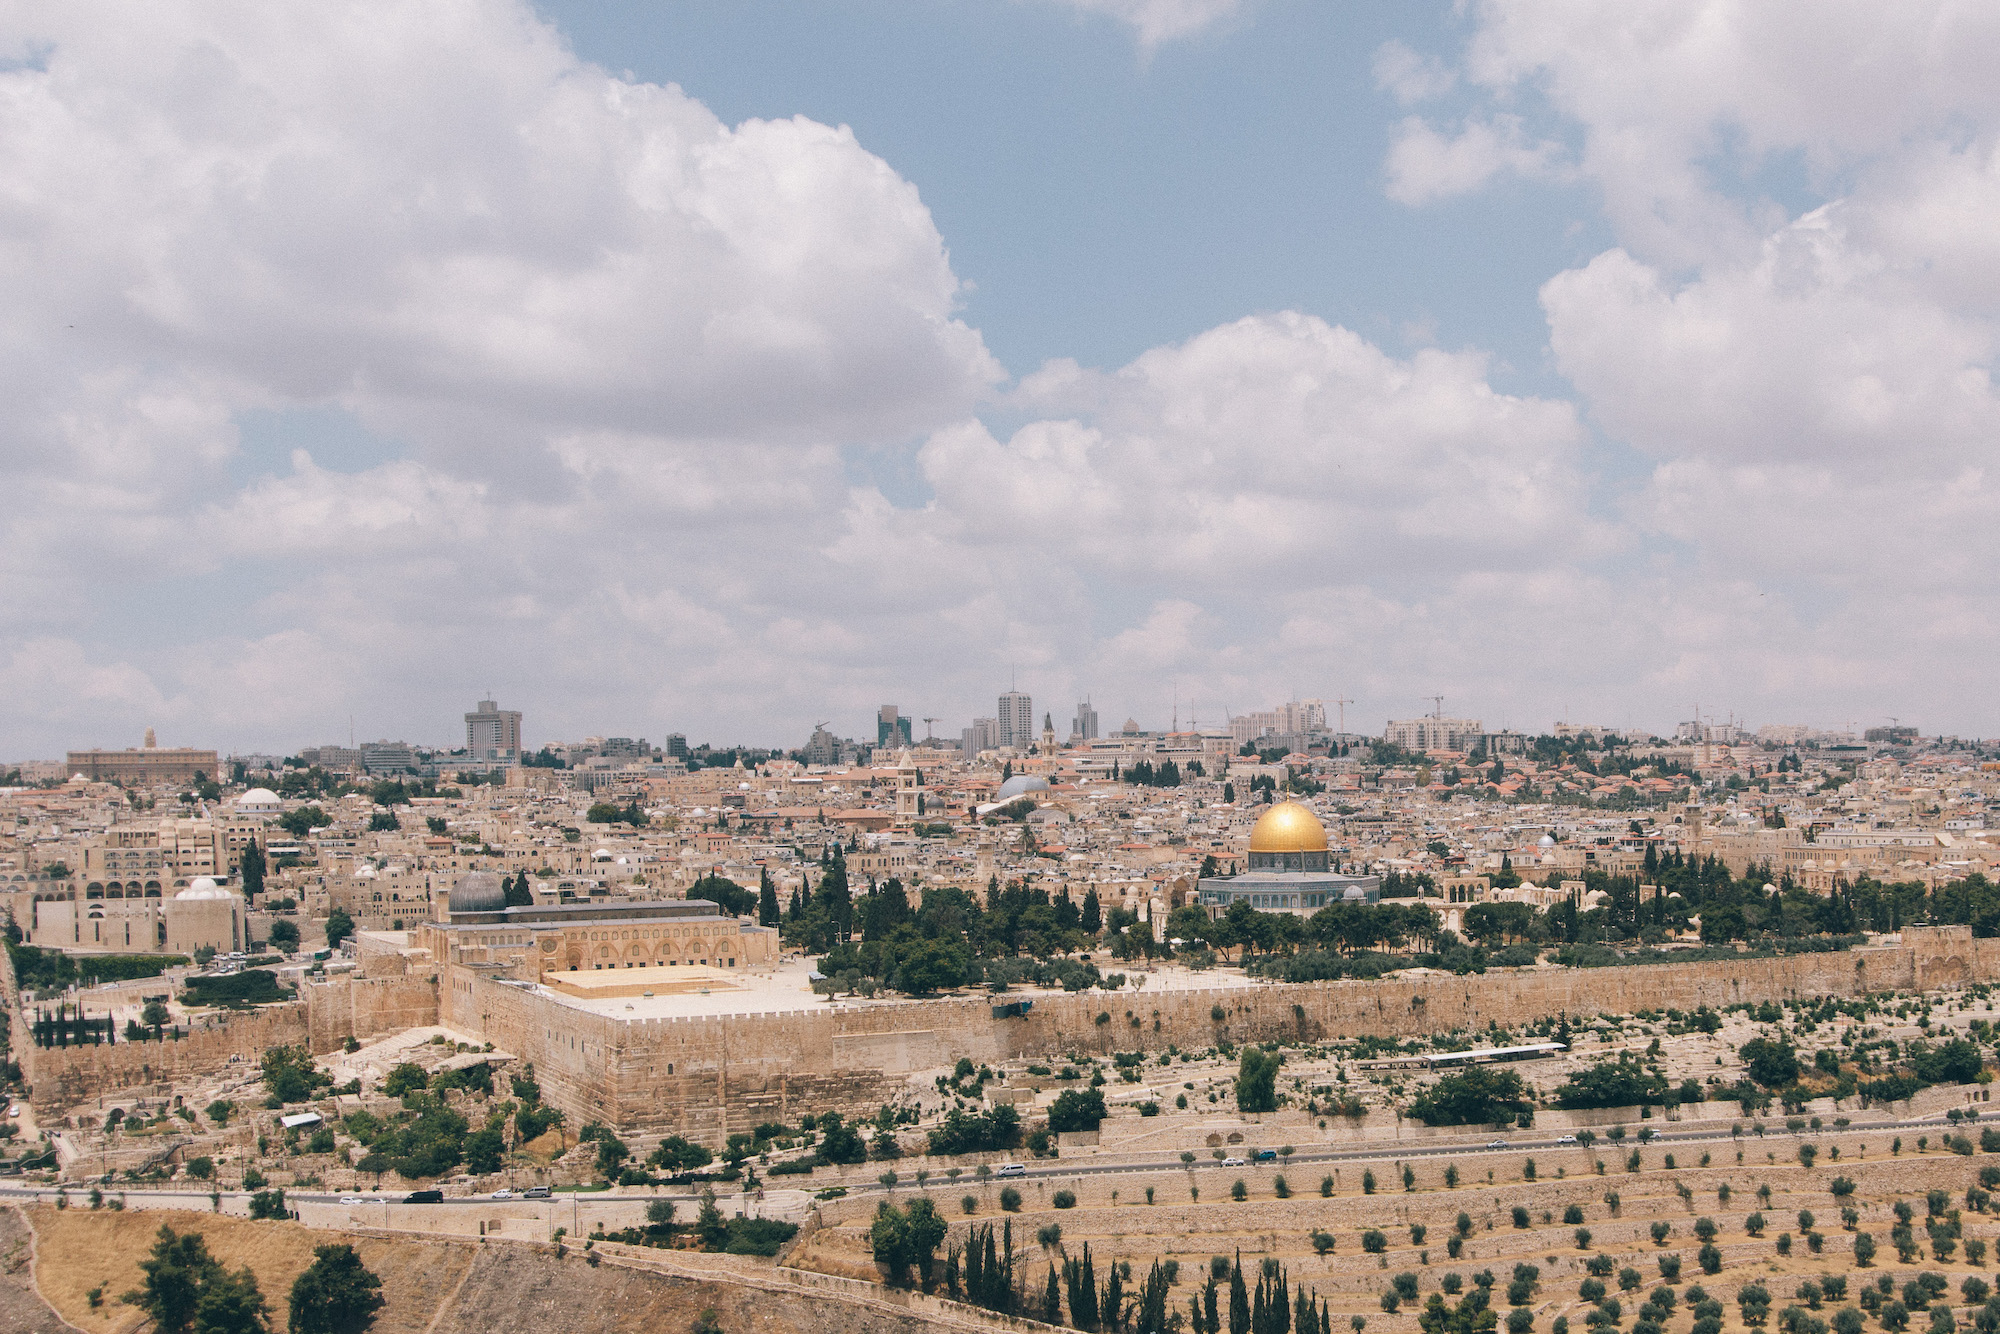 Jerusalem - Day 6/7 was spent in potentially one of the most important cities in the world. Its history, architecture and religious tension make it one of the most fascinating places I have ever been to.